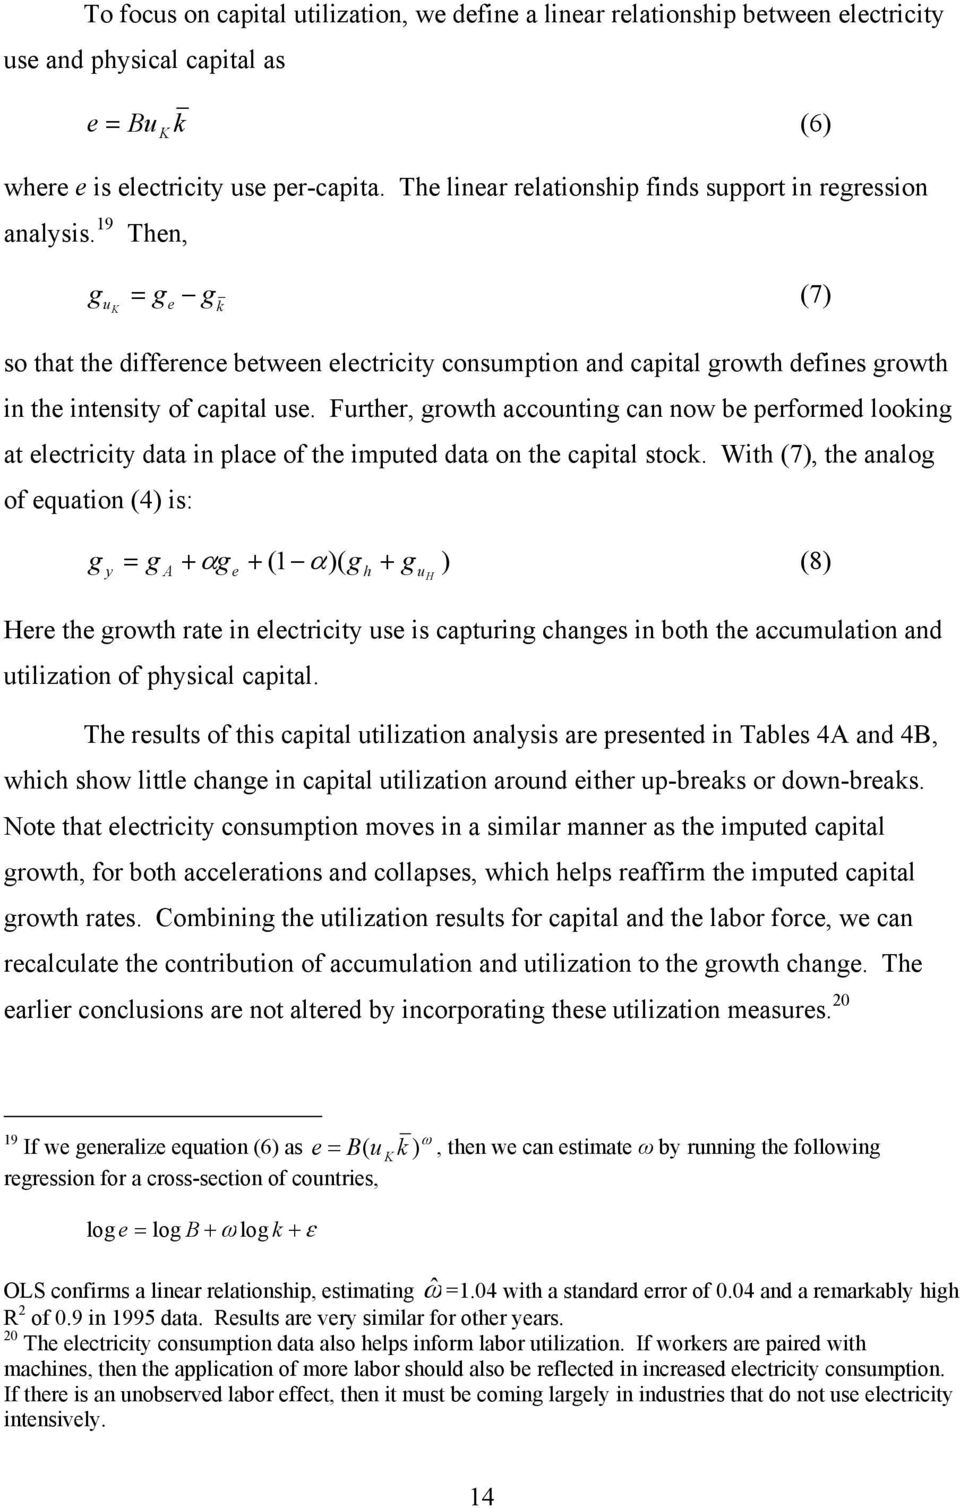 19 Then, gu K = g g (7) e k so that the difference between electricity consumption and capital growth defines growth in the intensity of capital use.